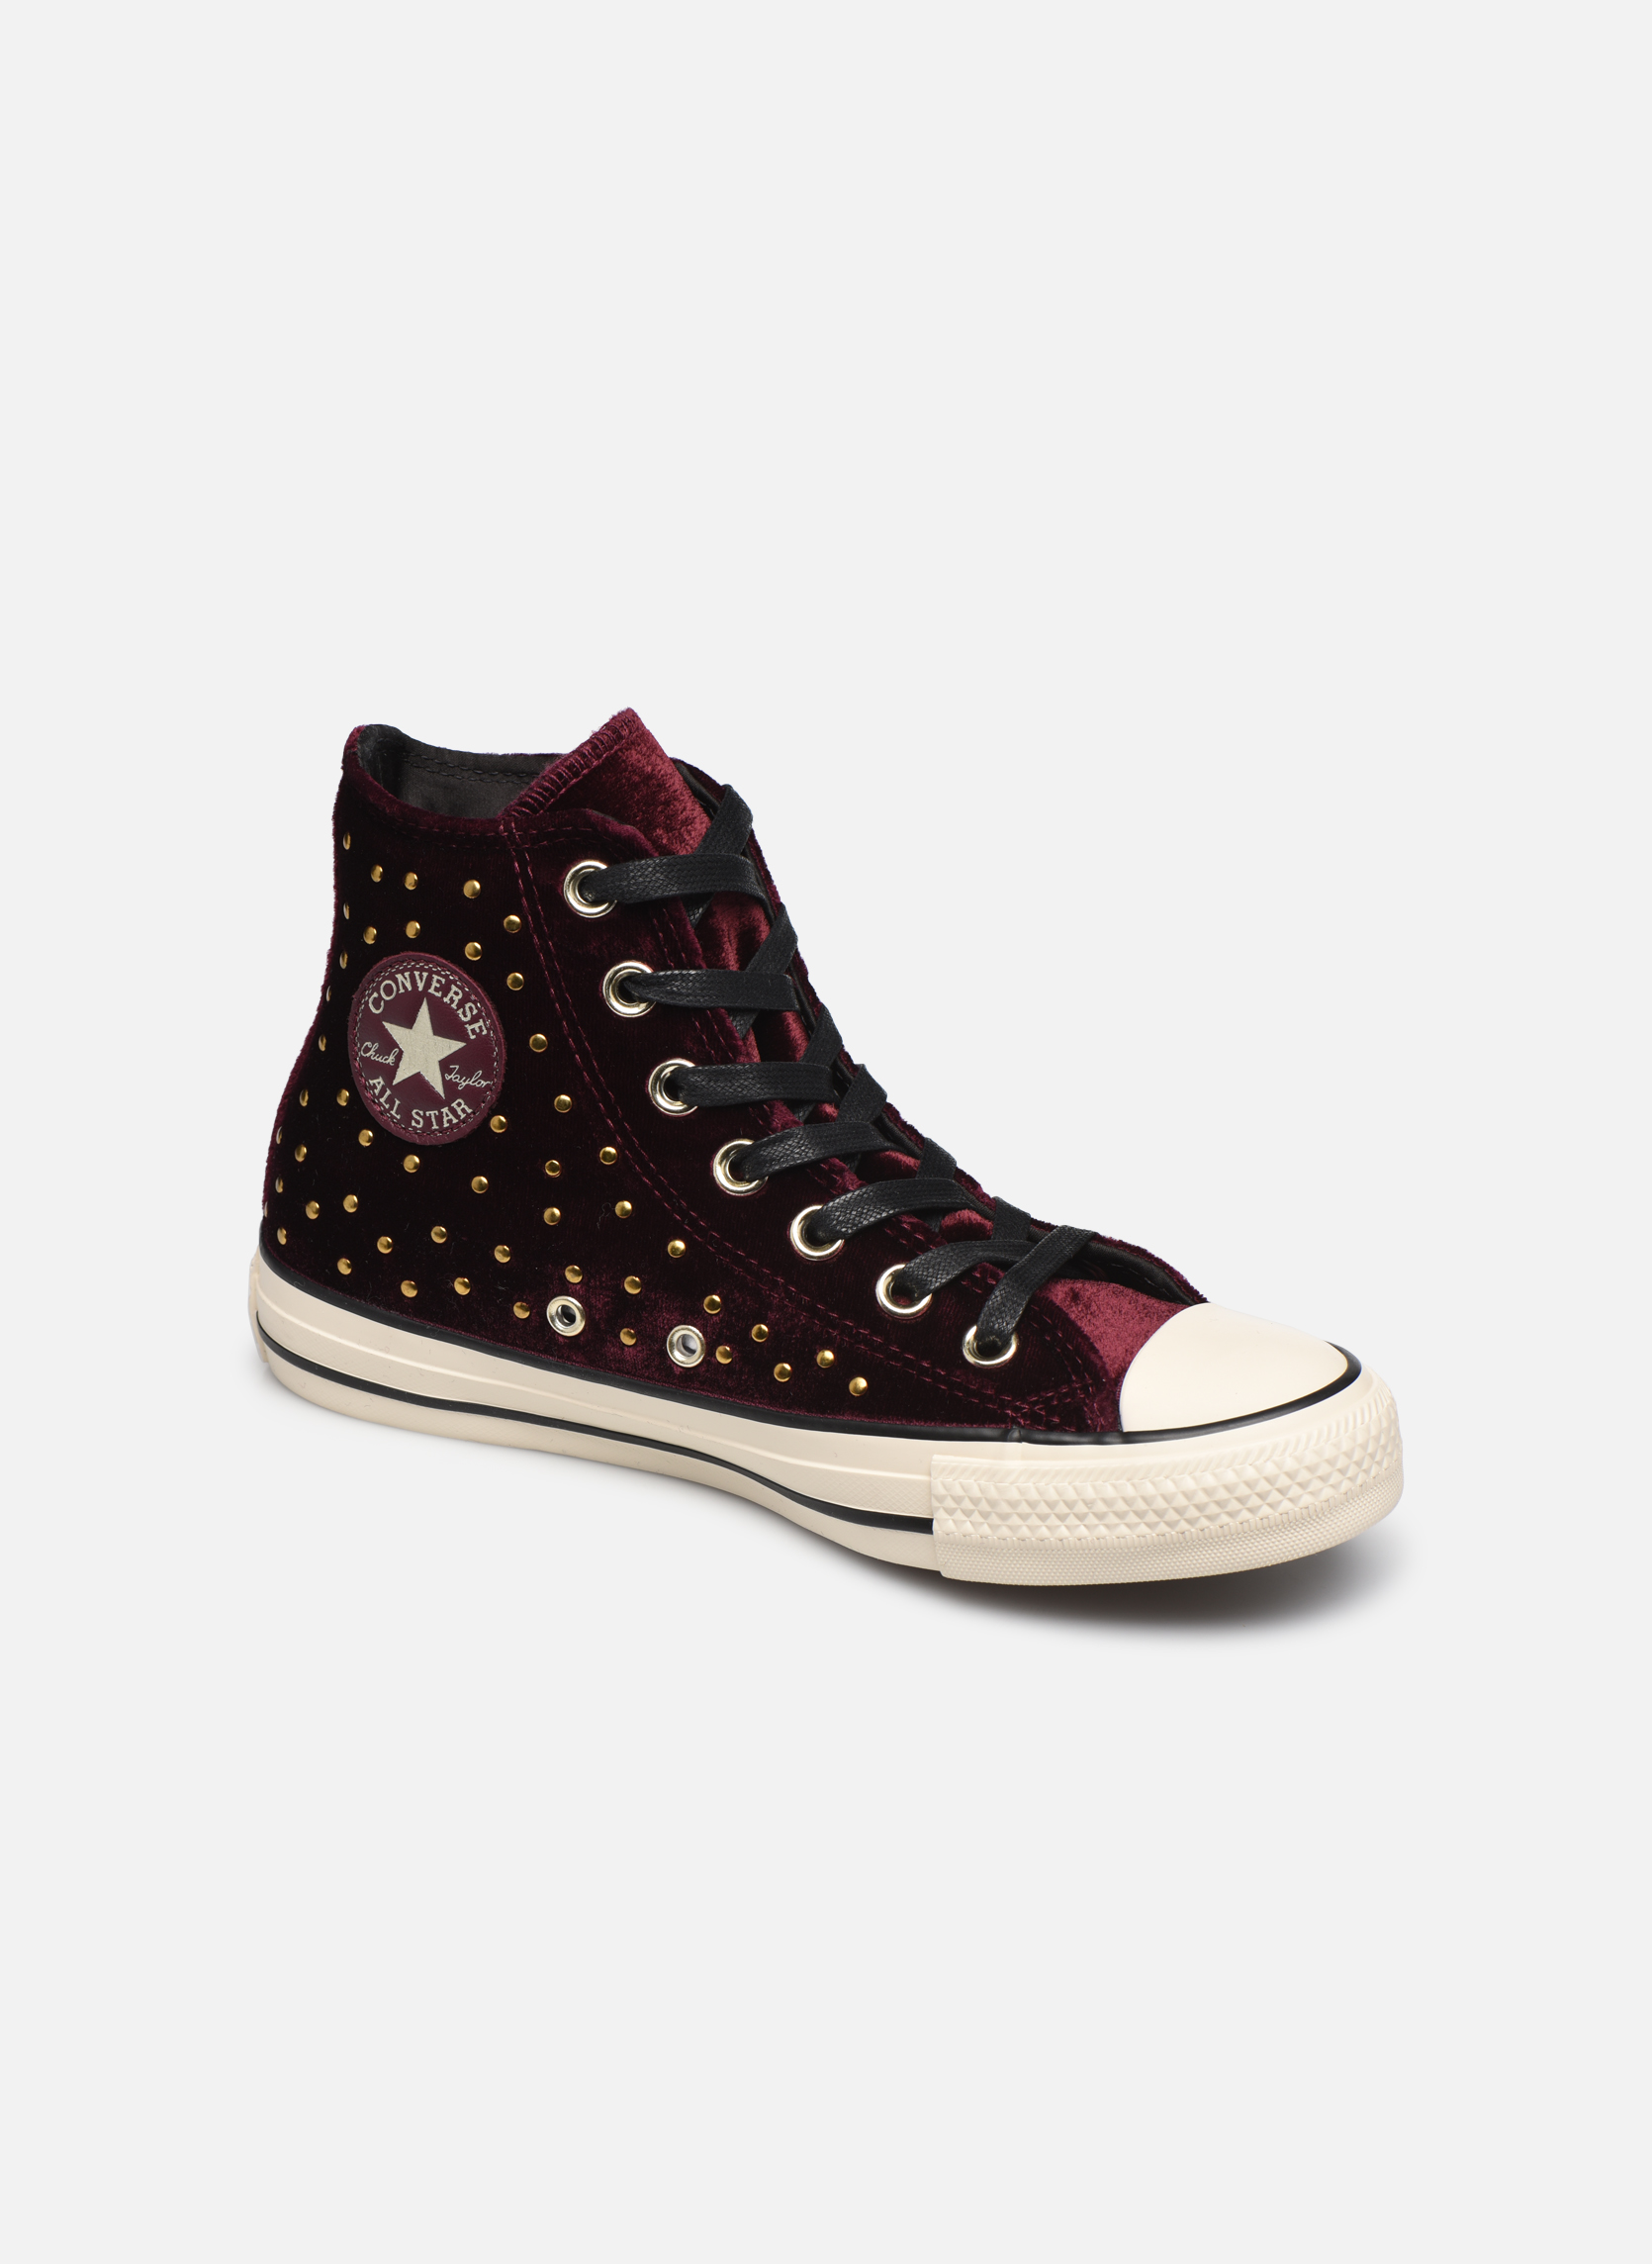 Baskets Femme Chuck Taylor All Star Velvet Studs Hi